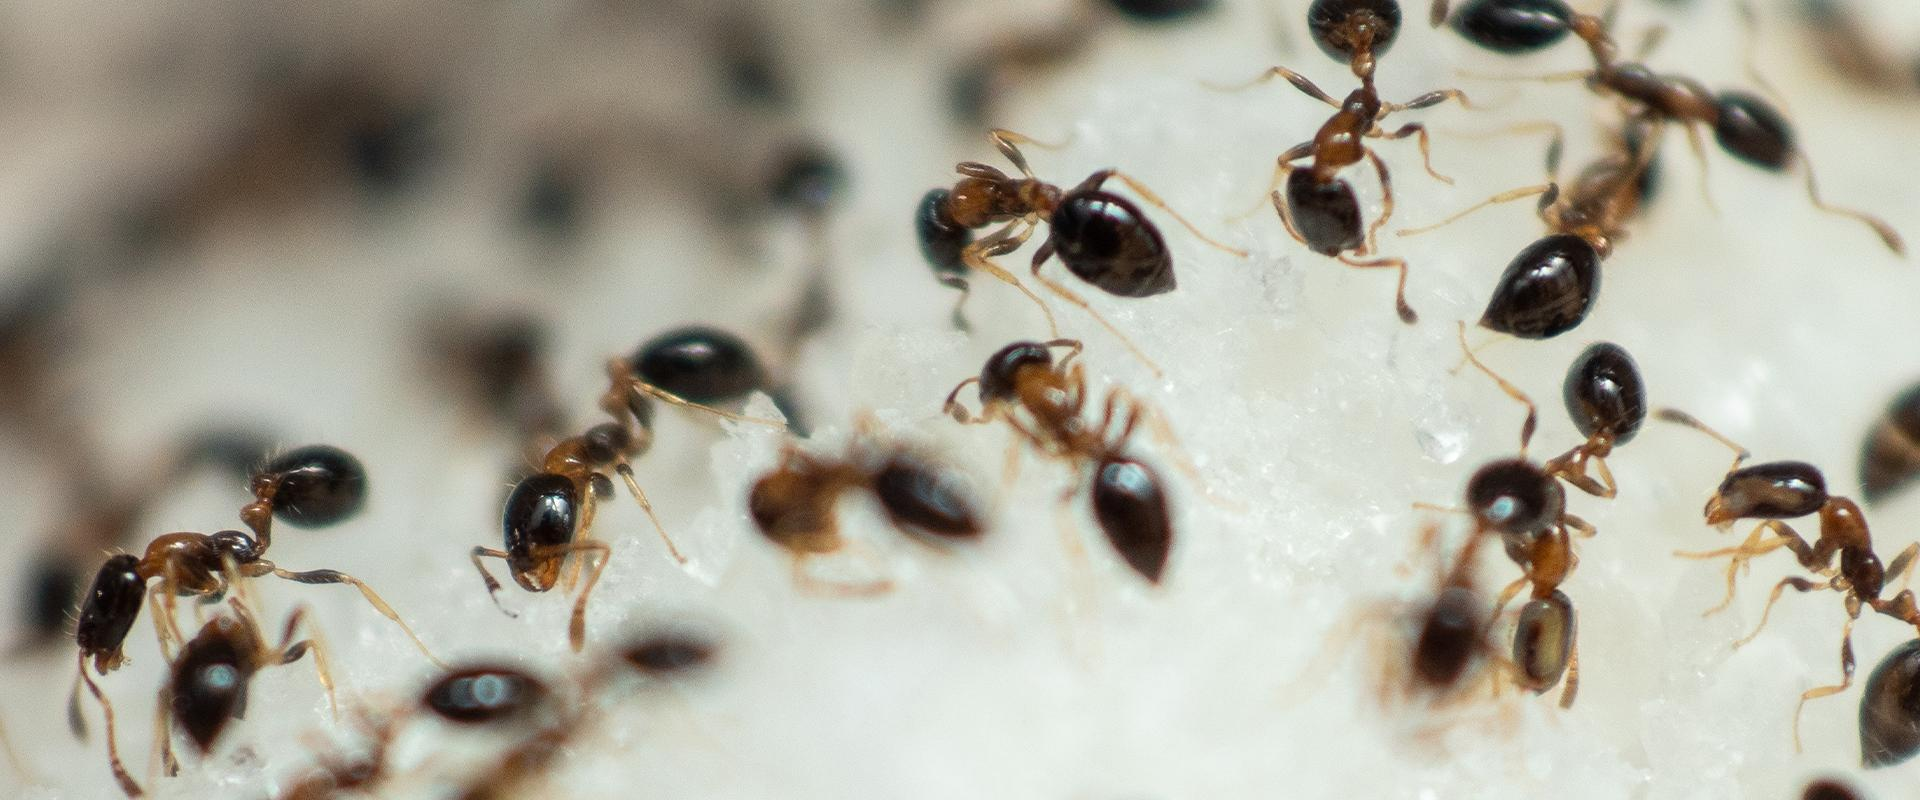 ants eating sugar